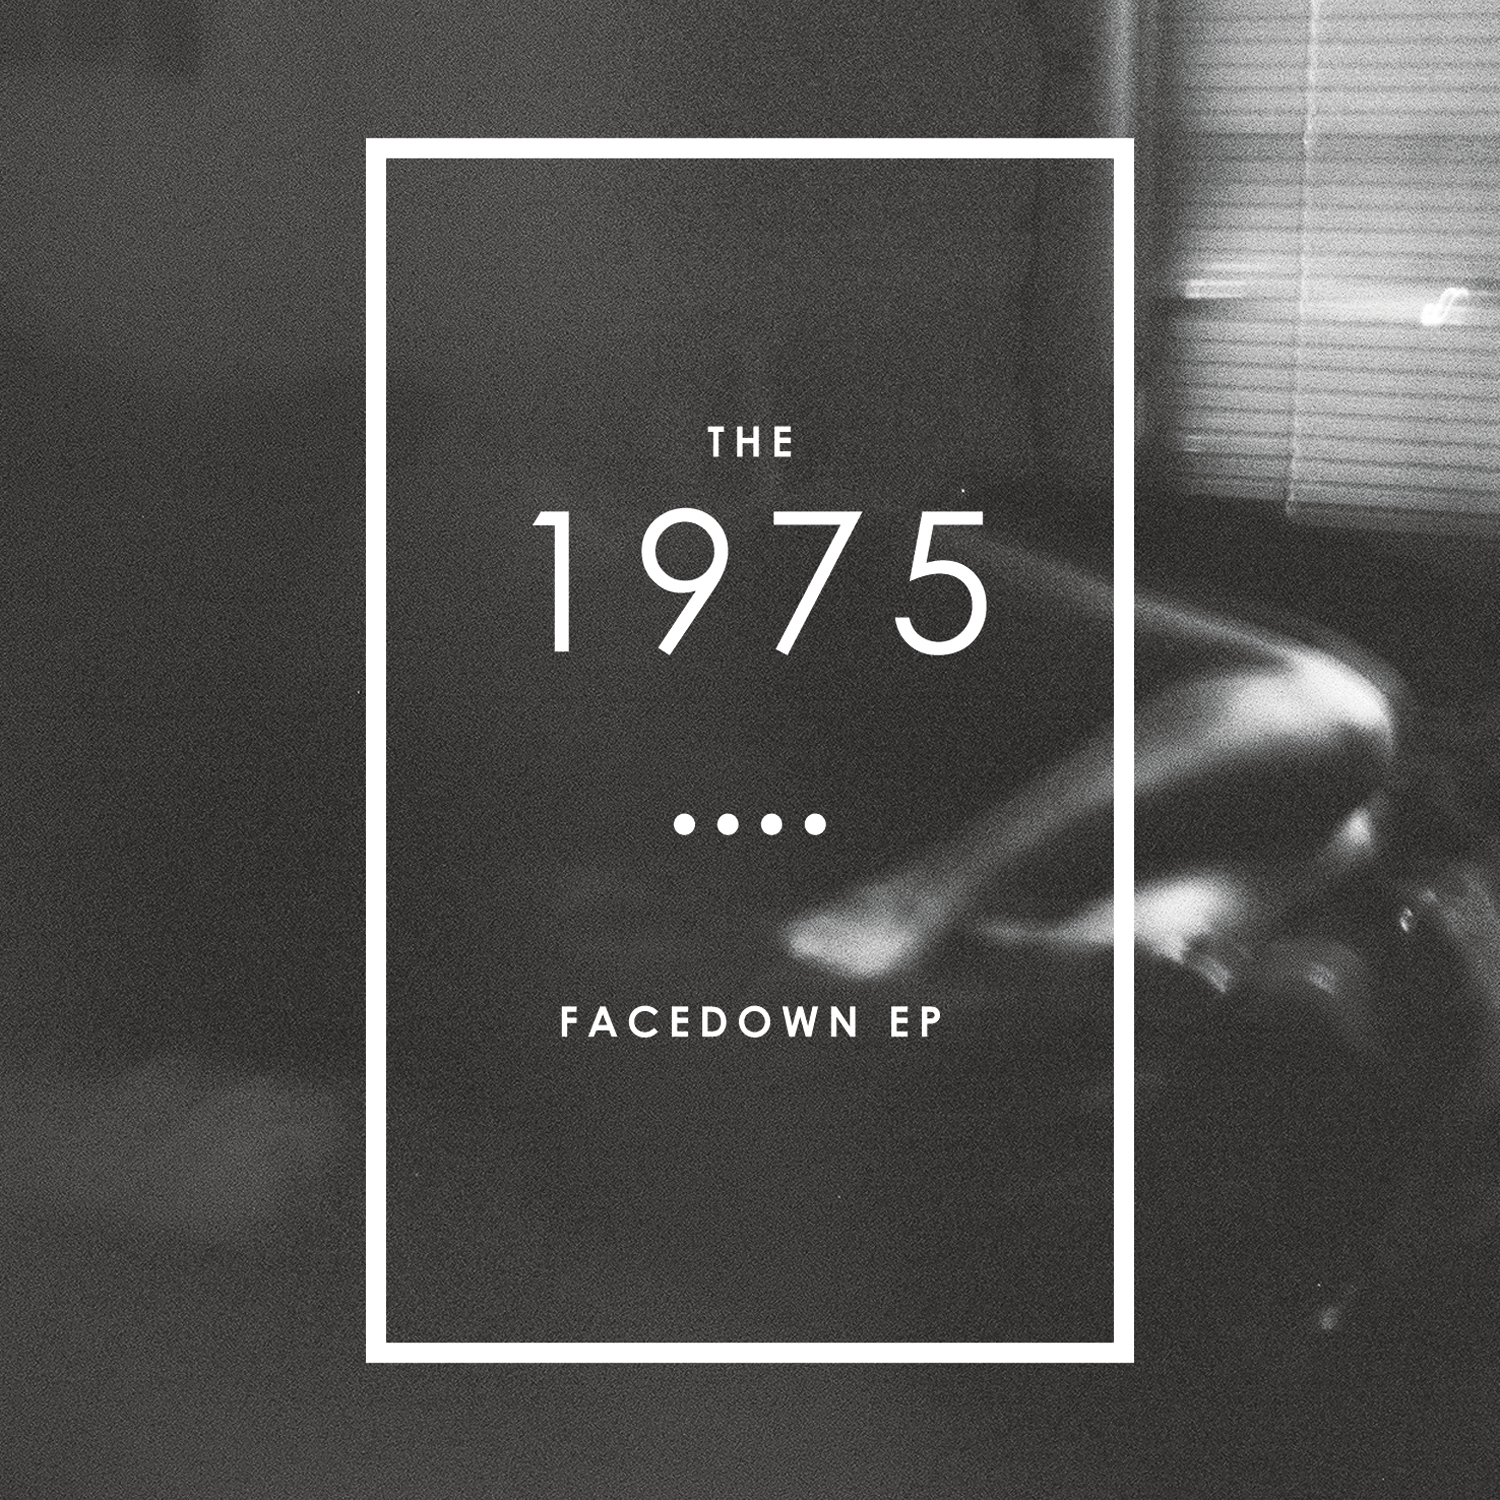 What is the font for the text of The 1975?